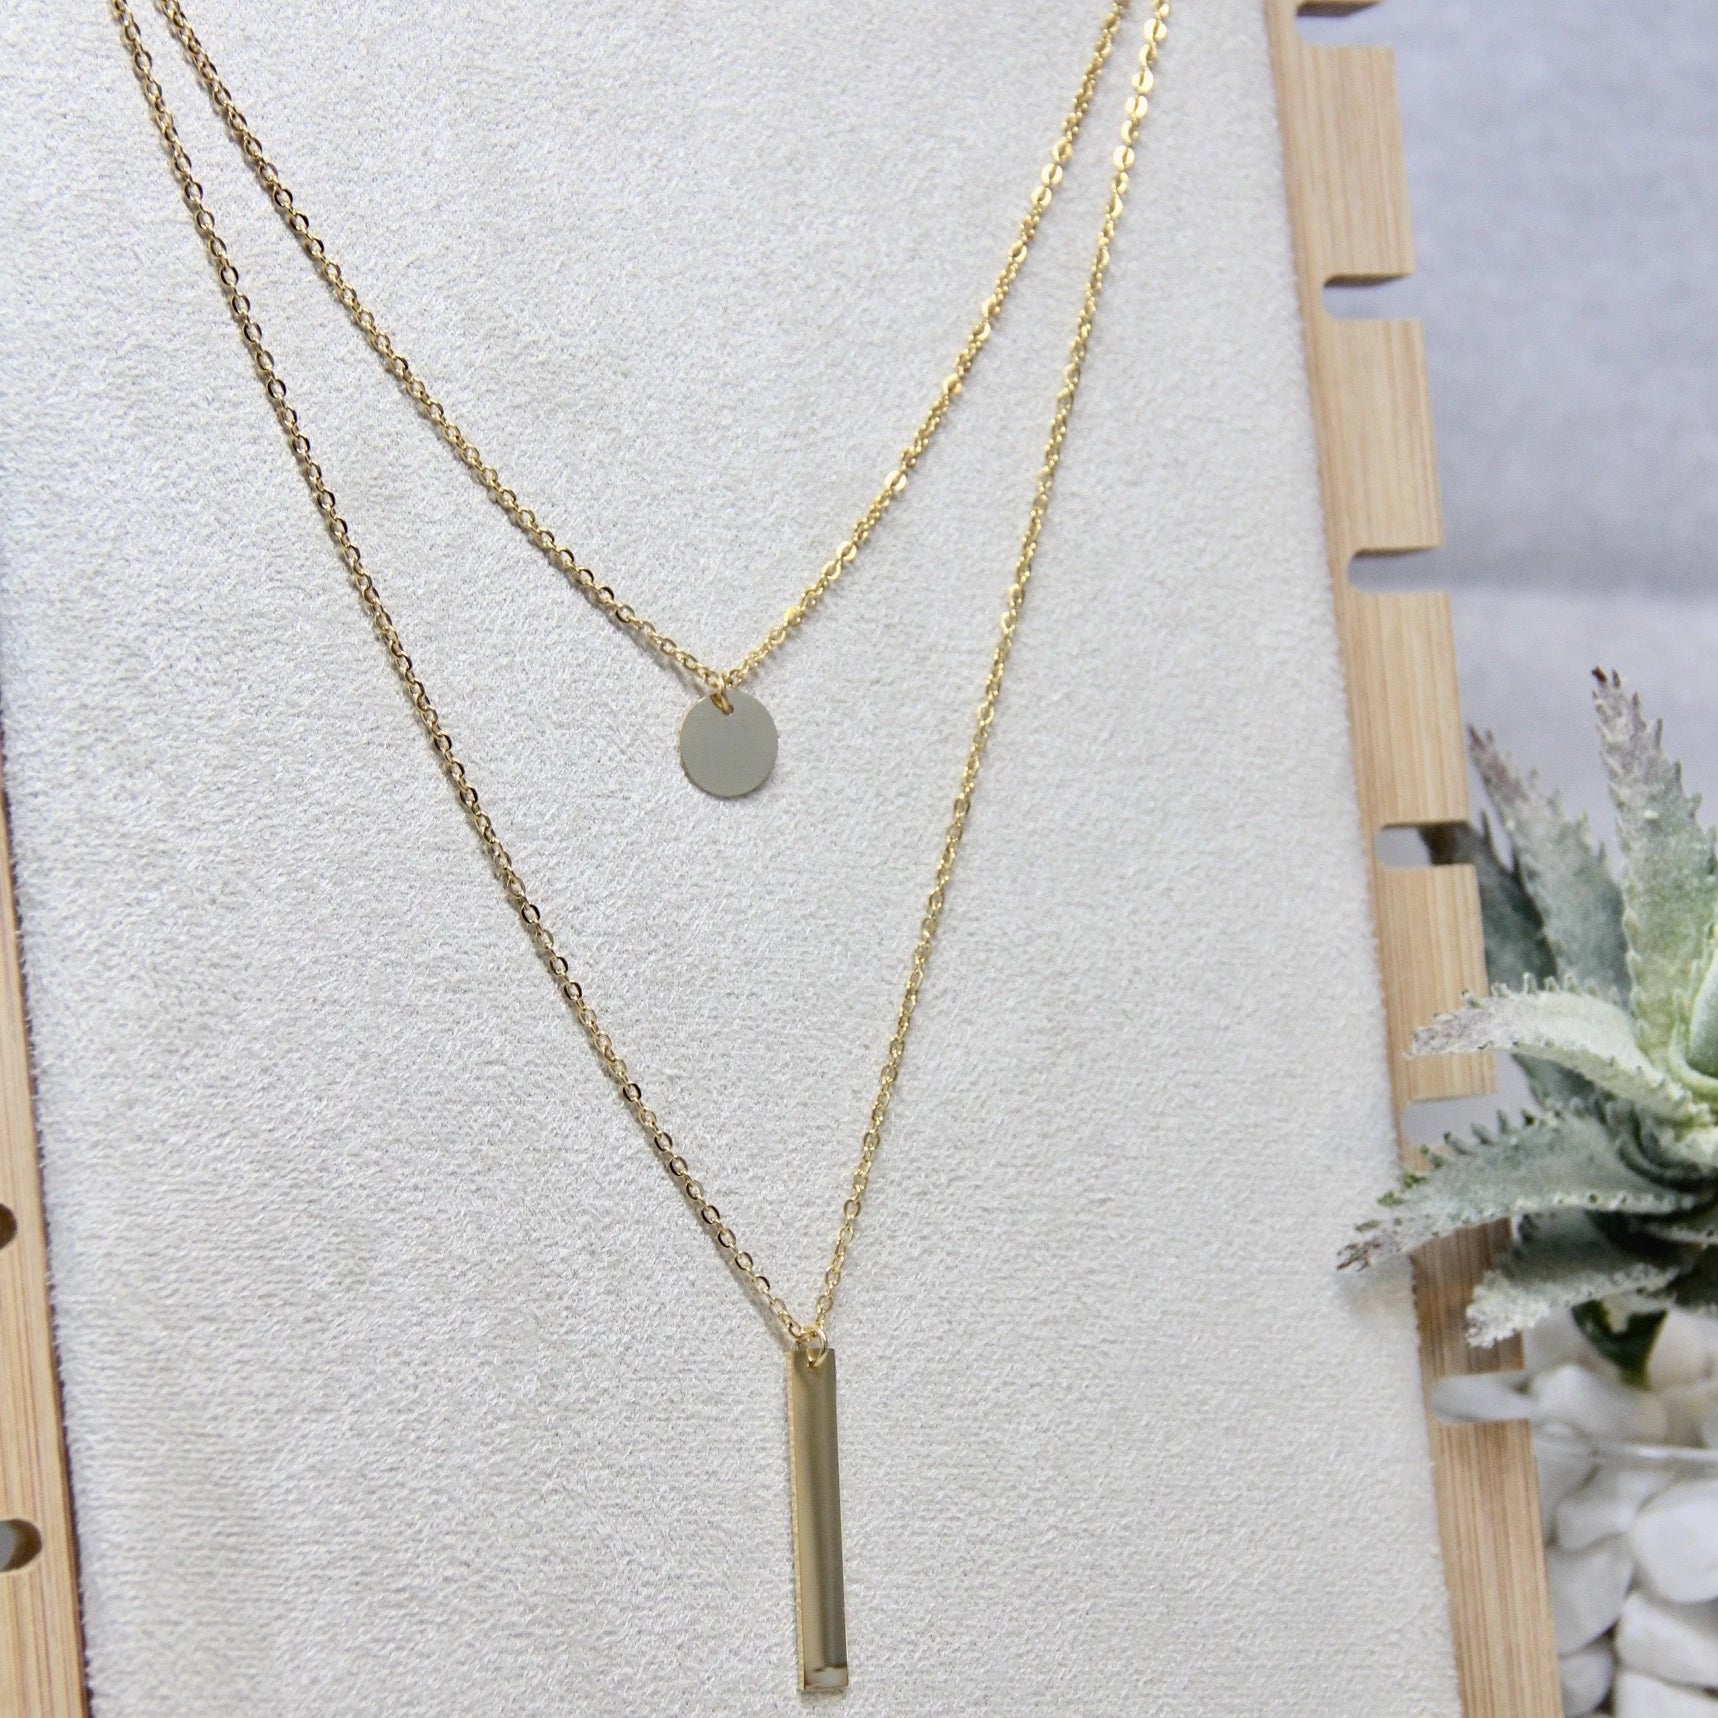 Stainless Steel Layering Necklace - Sswing Lifestyle Company